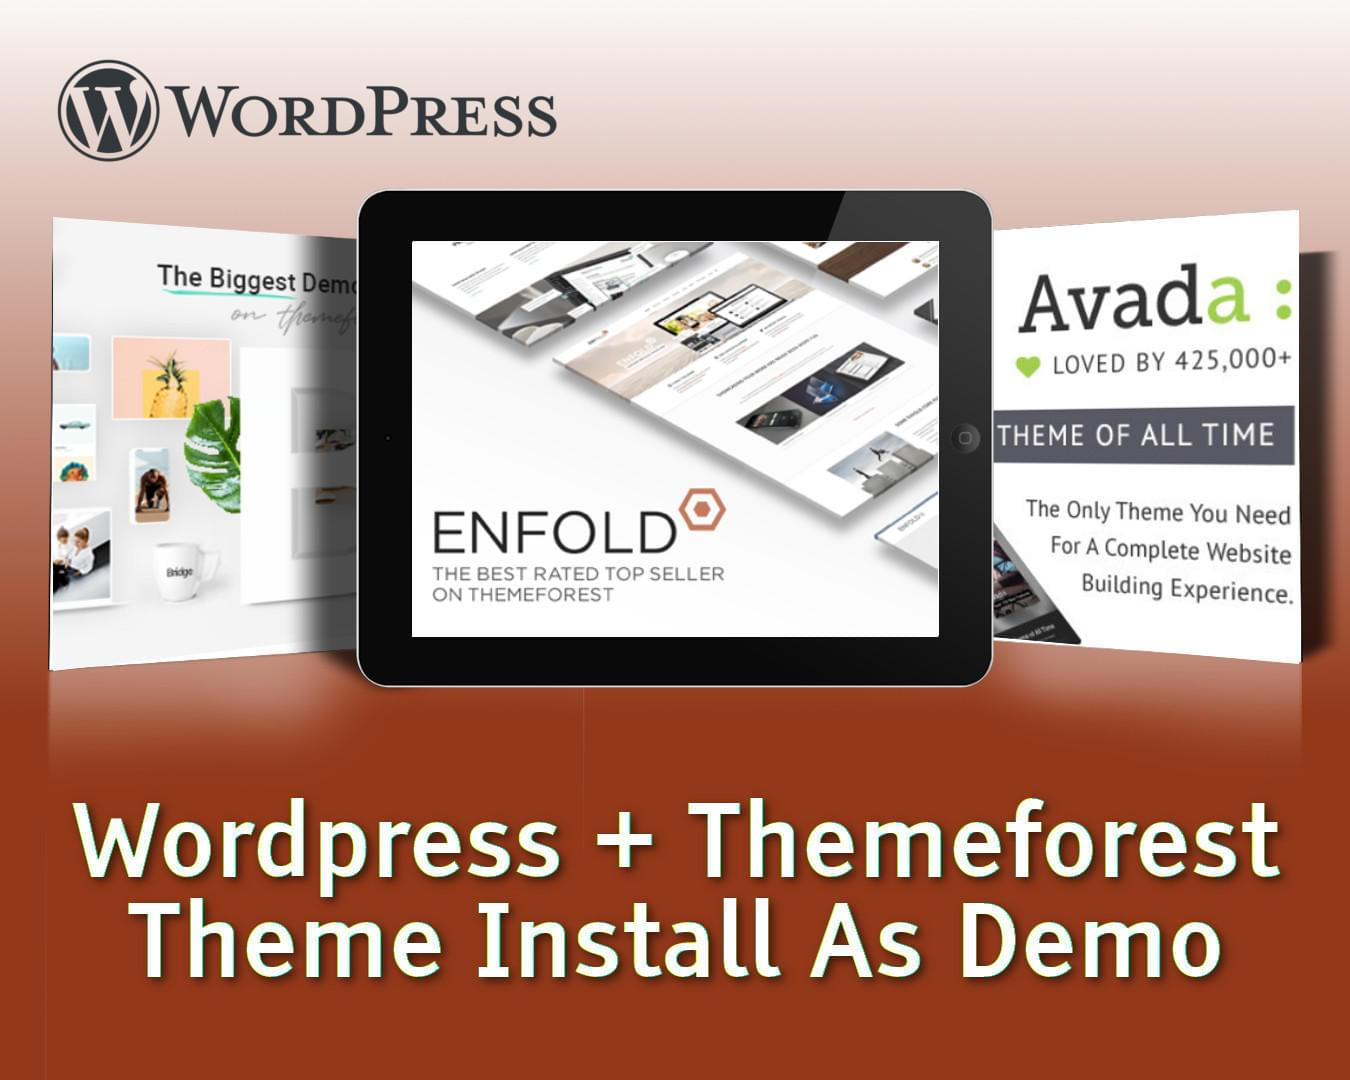 Wordpress + Themeforest Theme Install As Demo by gijsw - 113360